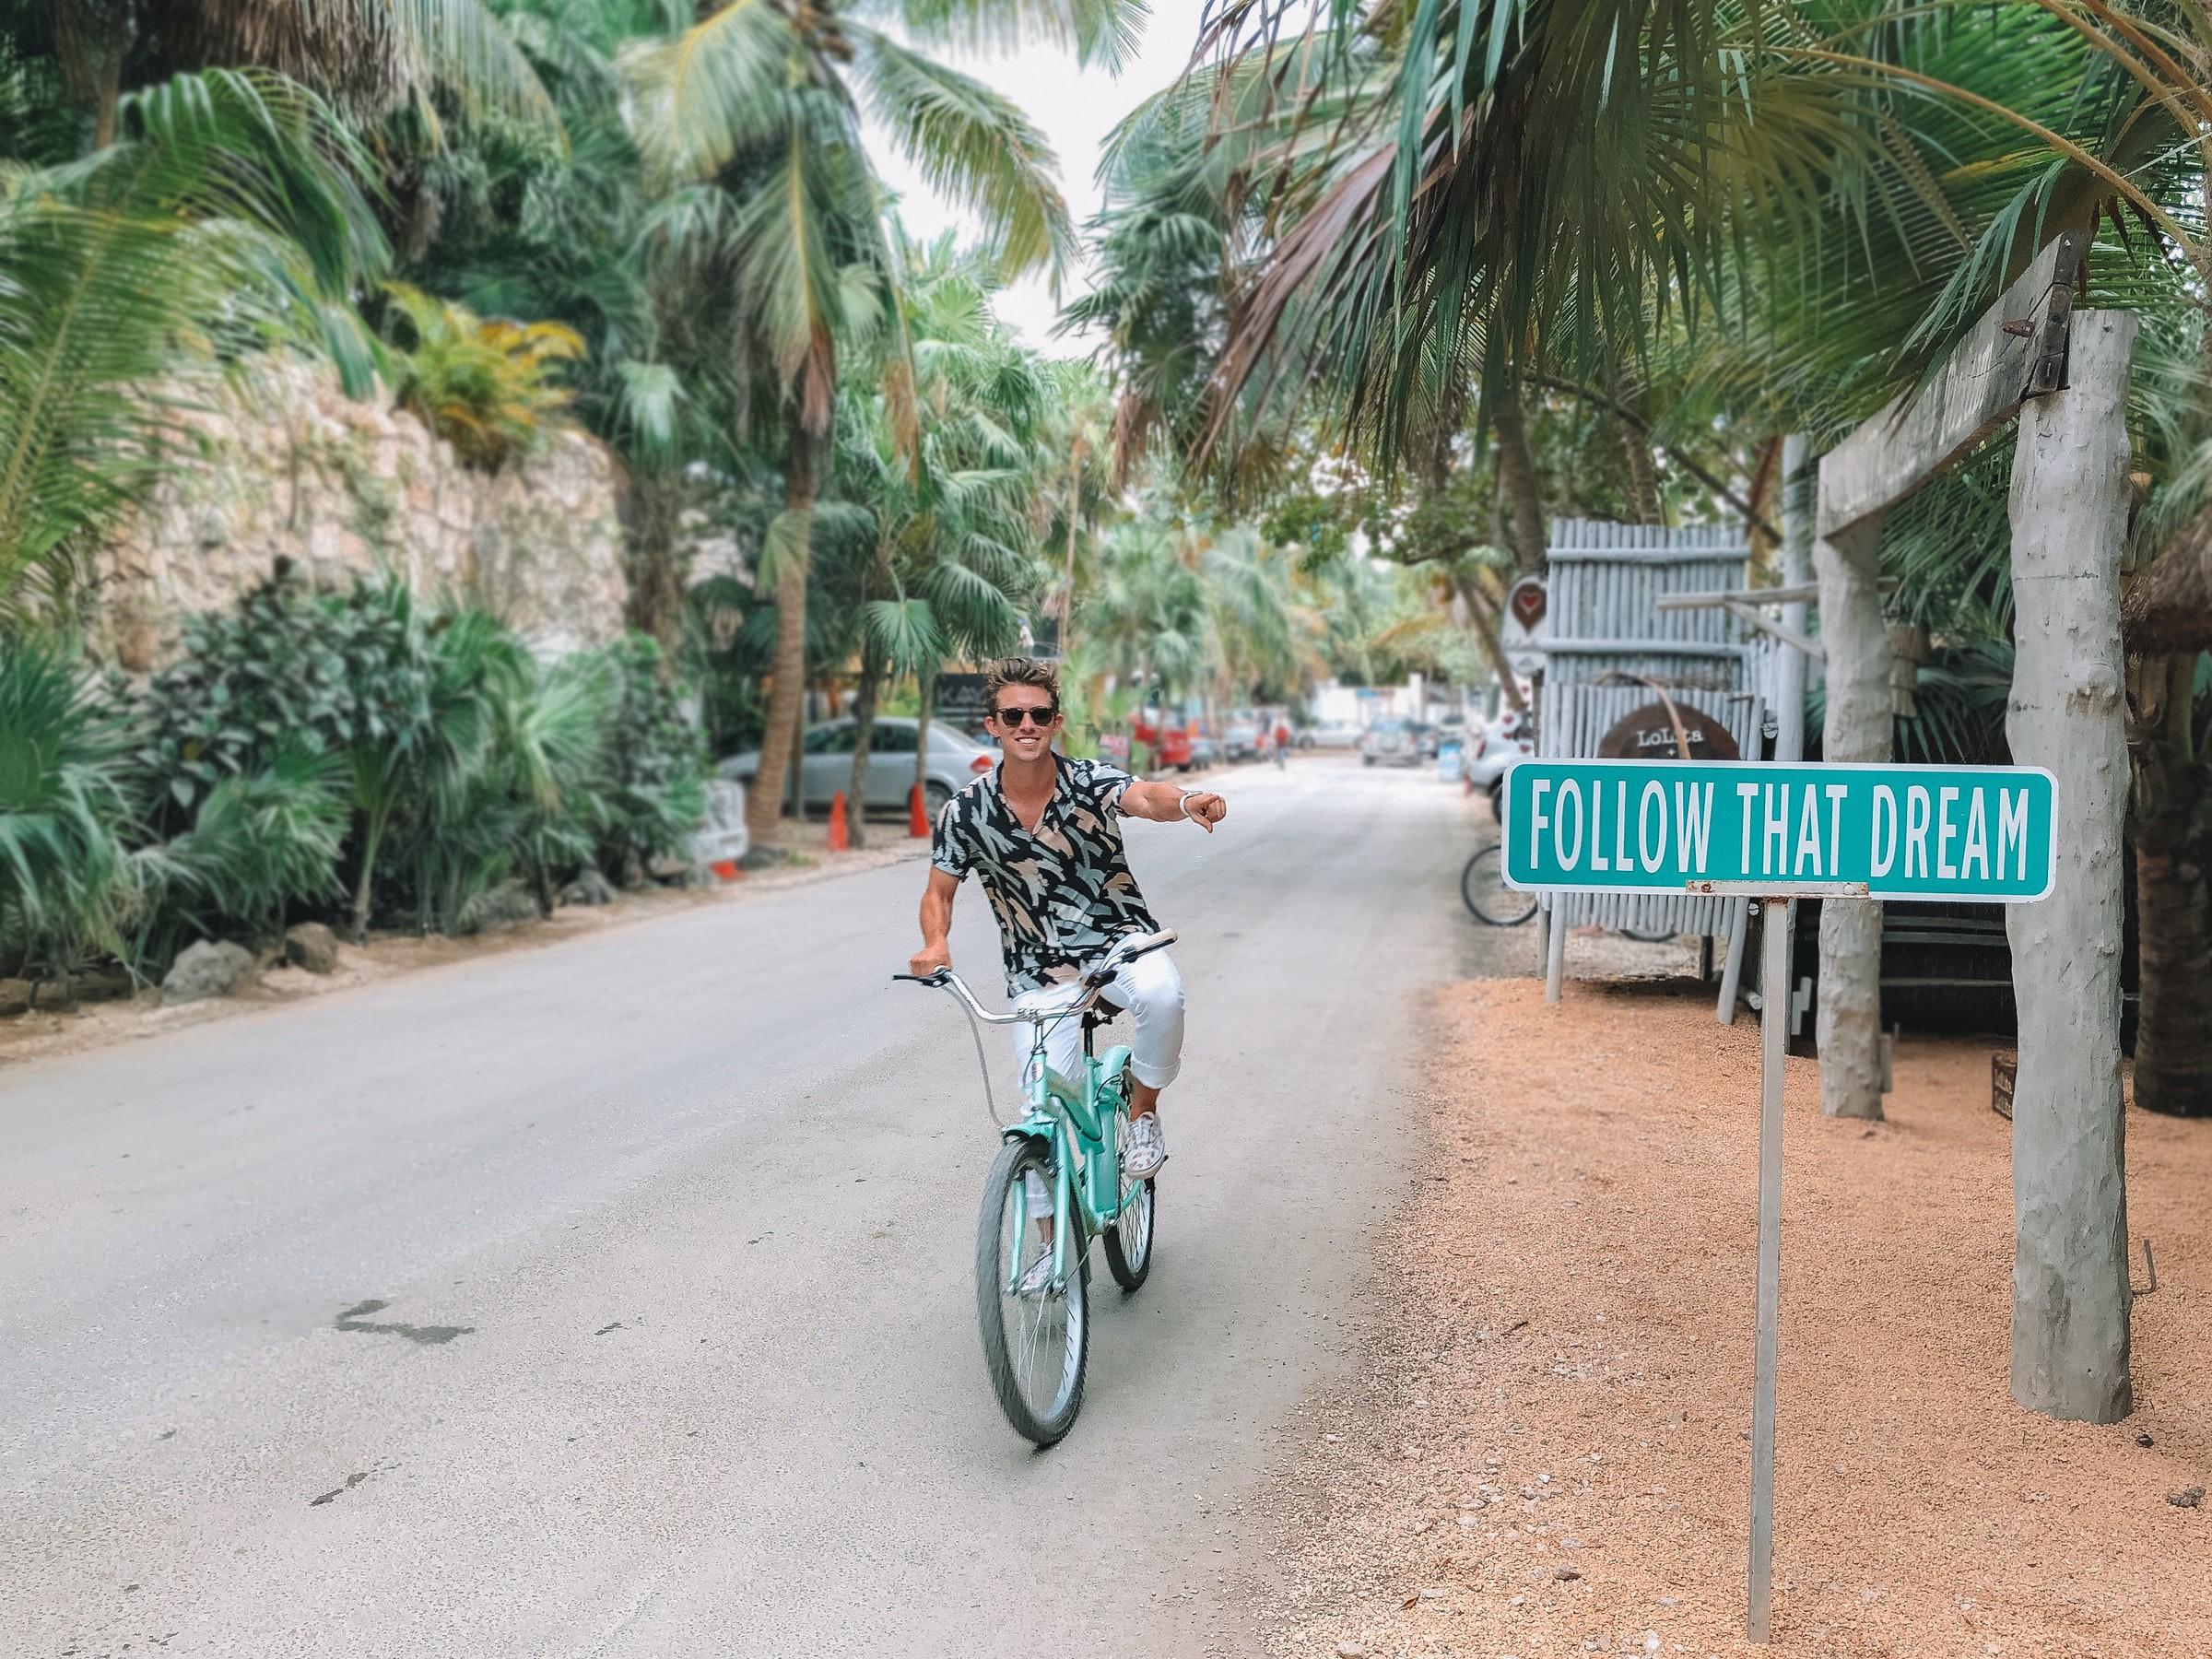 """Man on bike in tropical location pointing to a street sign that says, """"Follow That Dream."""""""